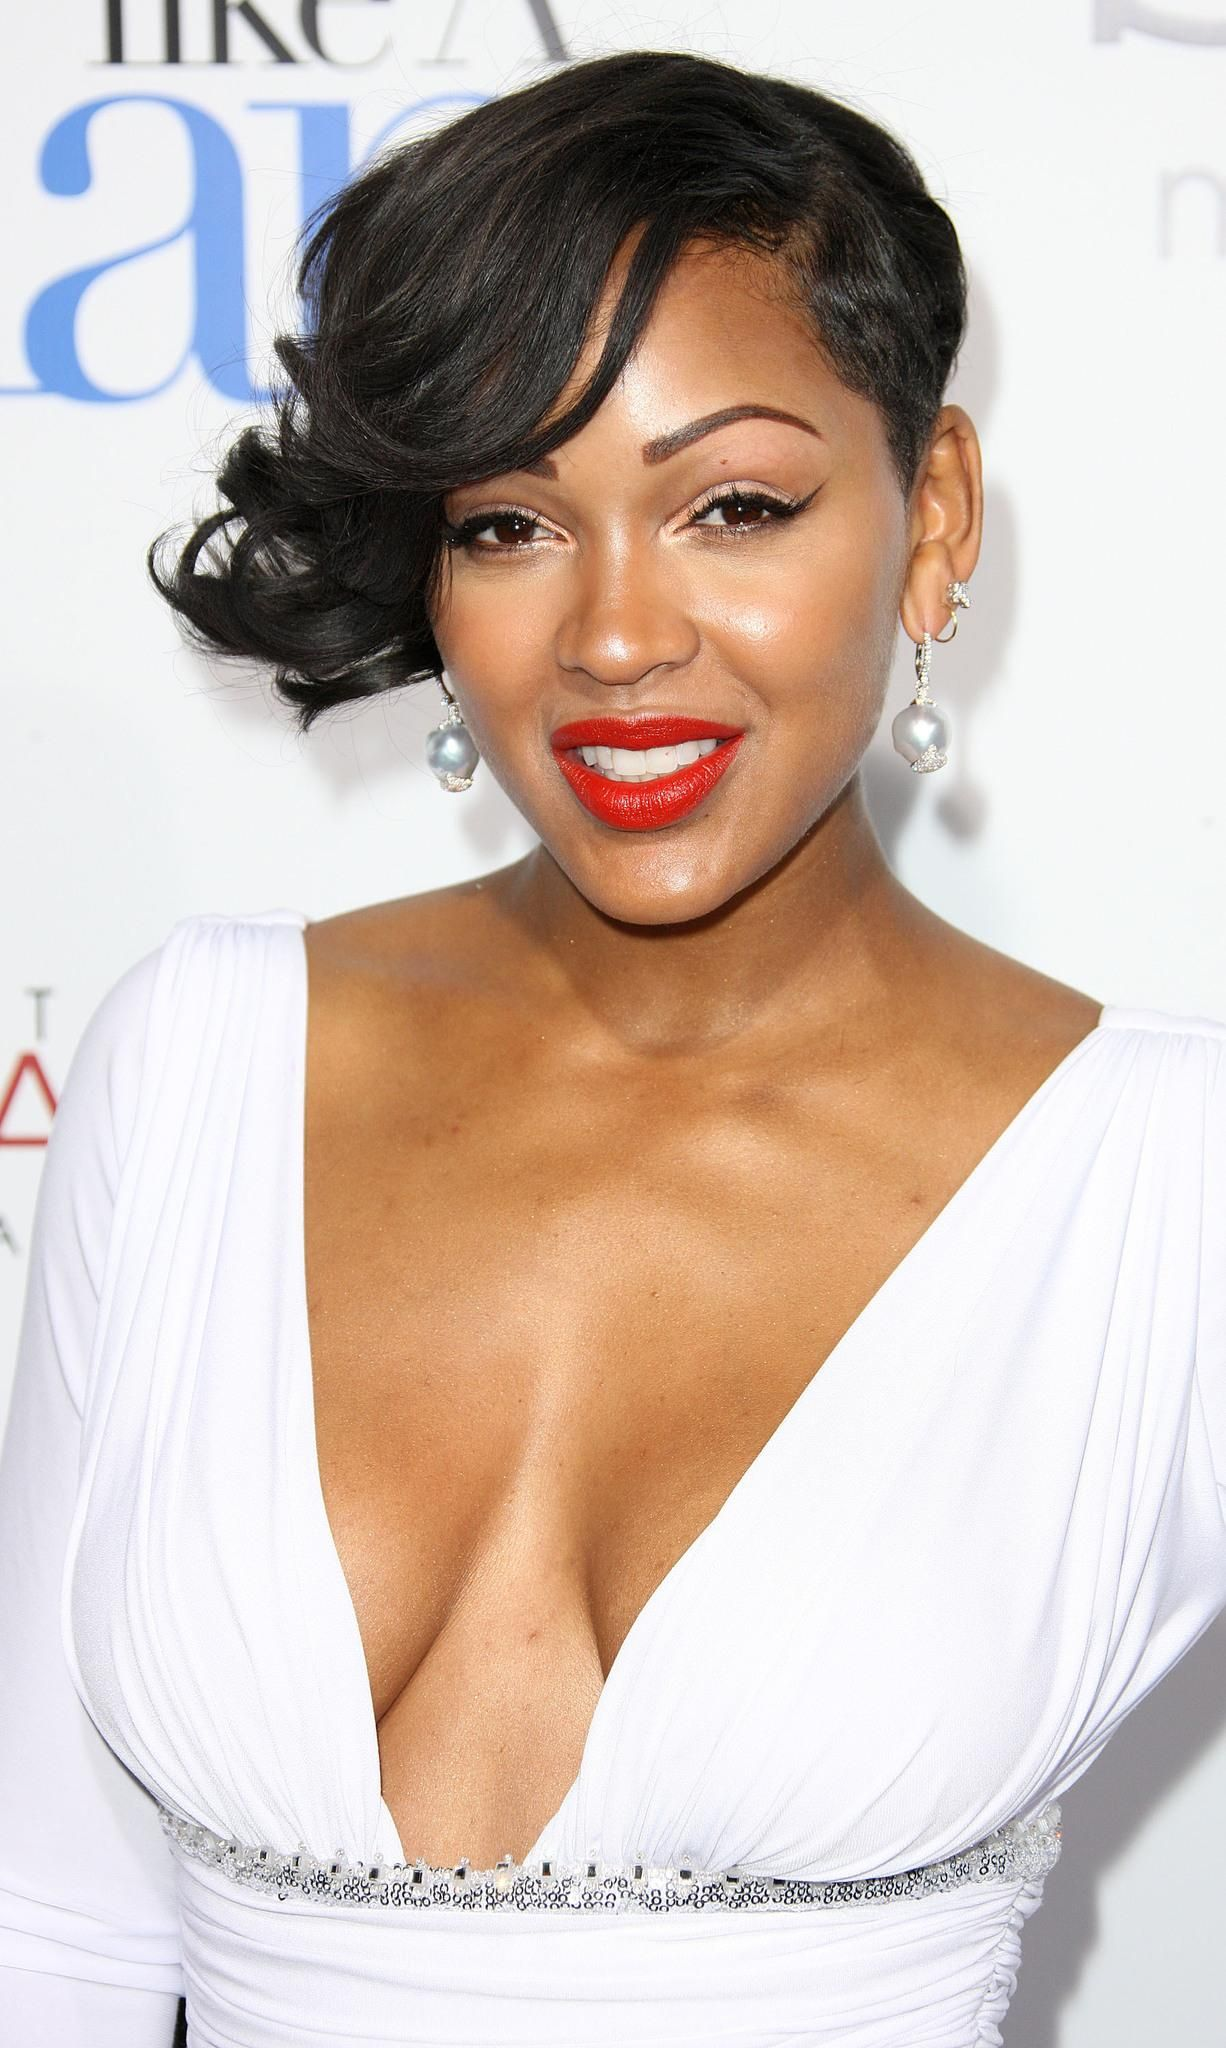 Meagan good can't handle her breasts